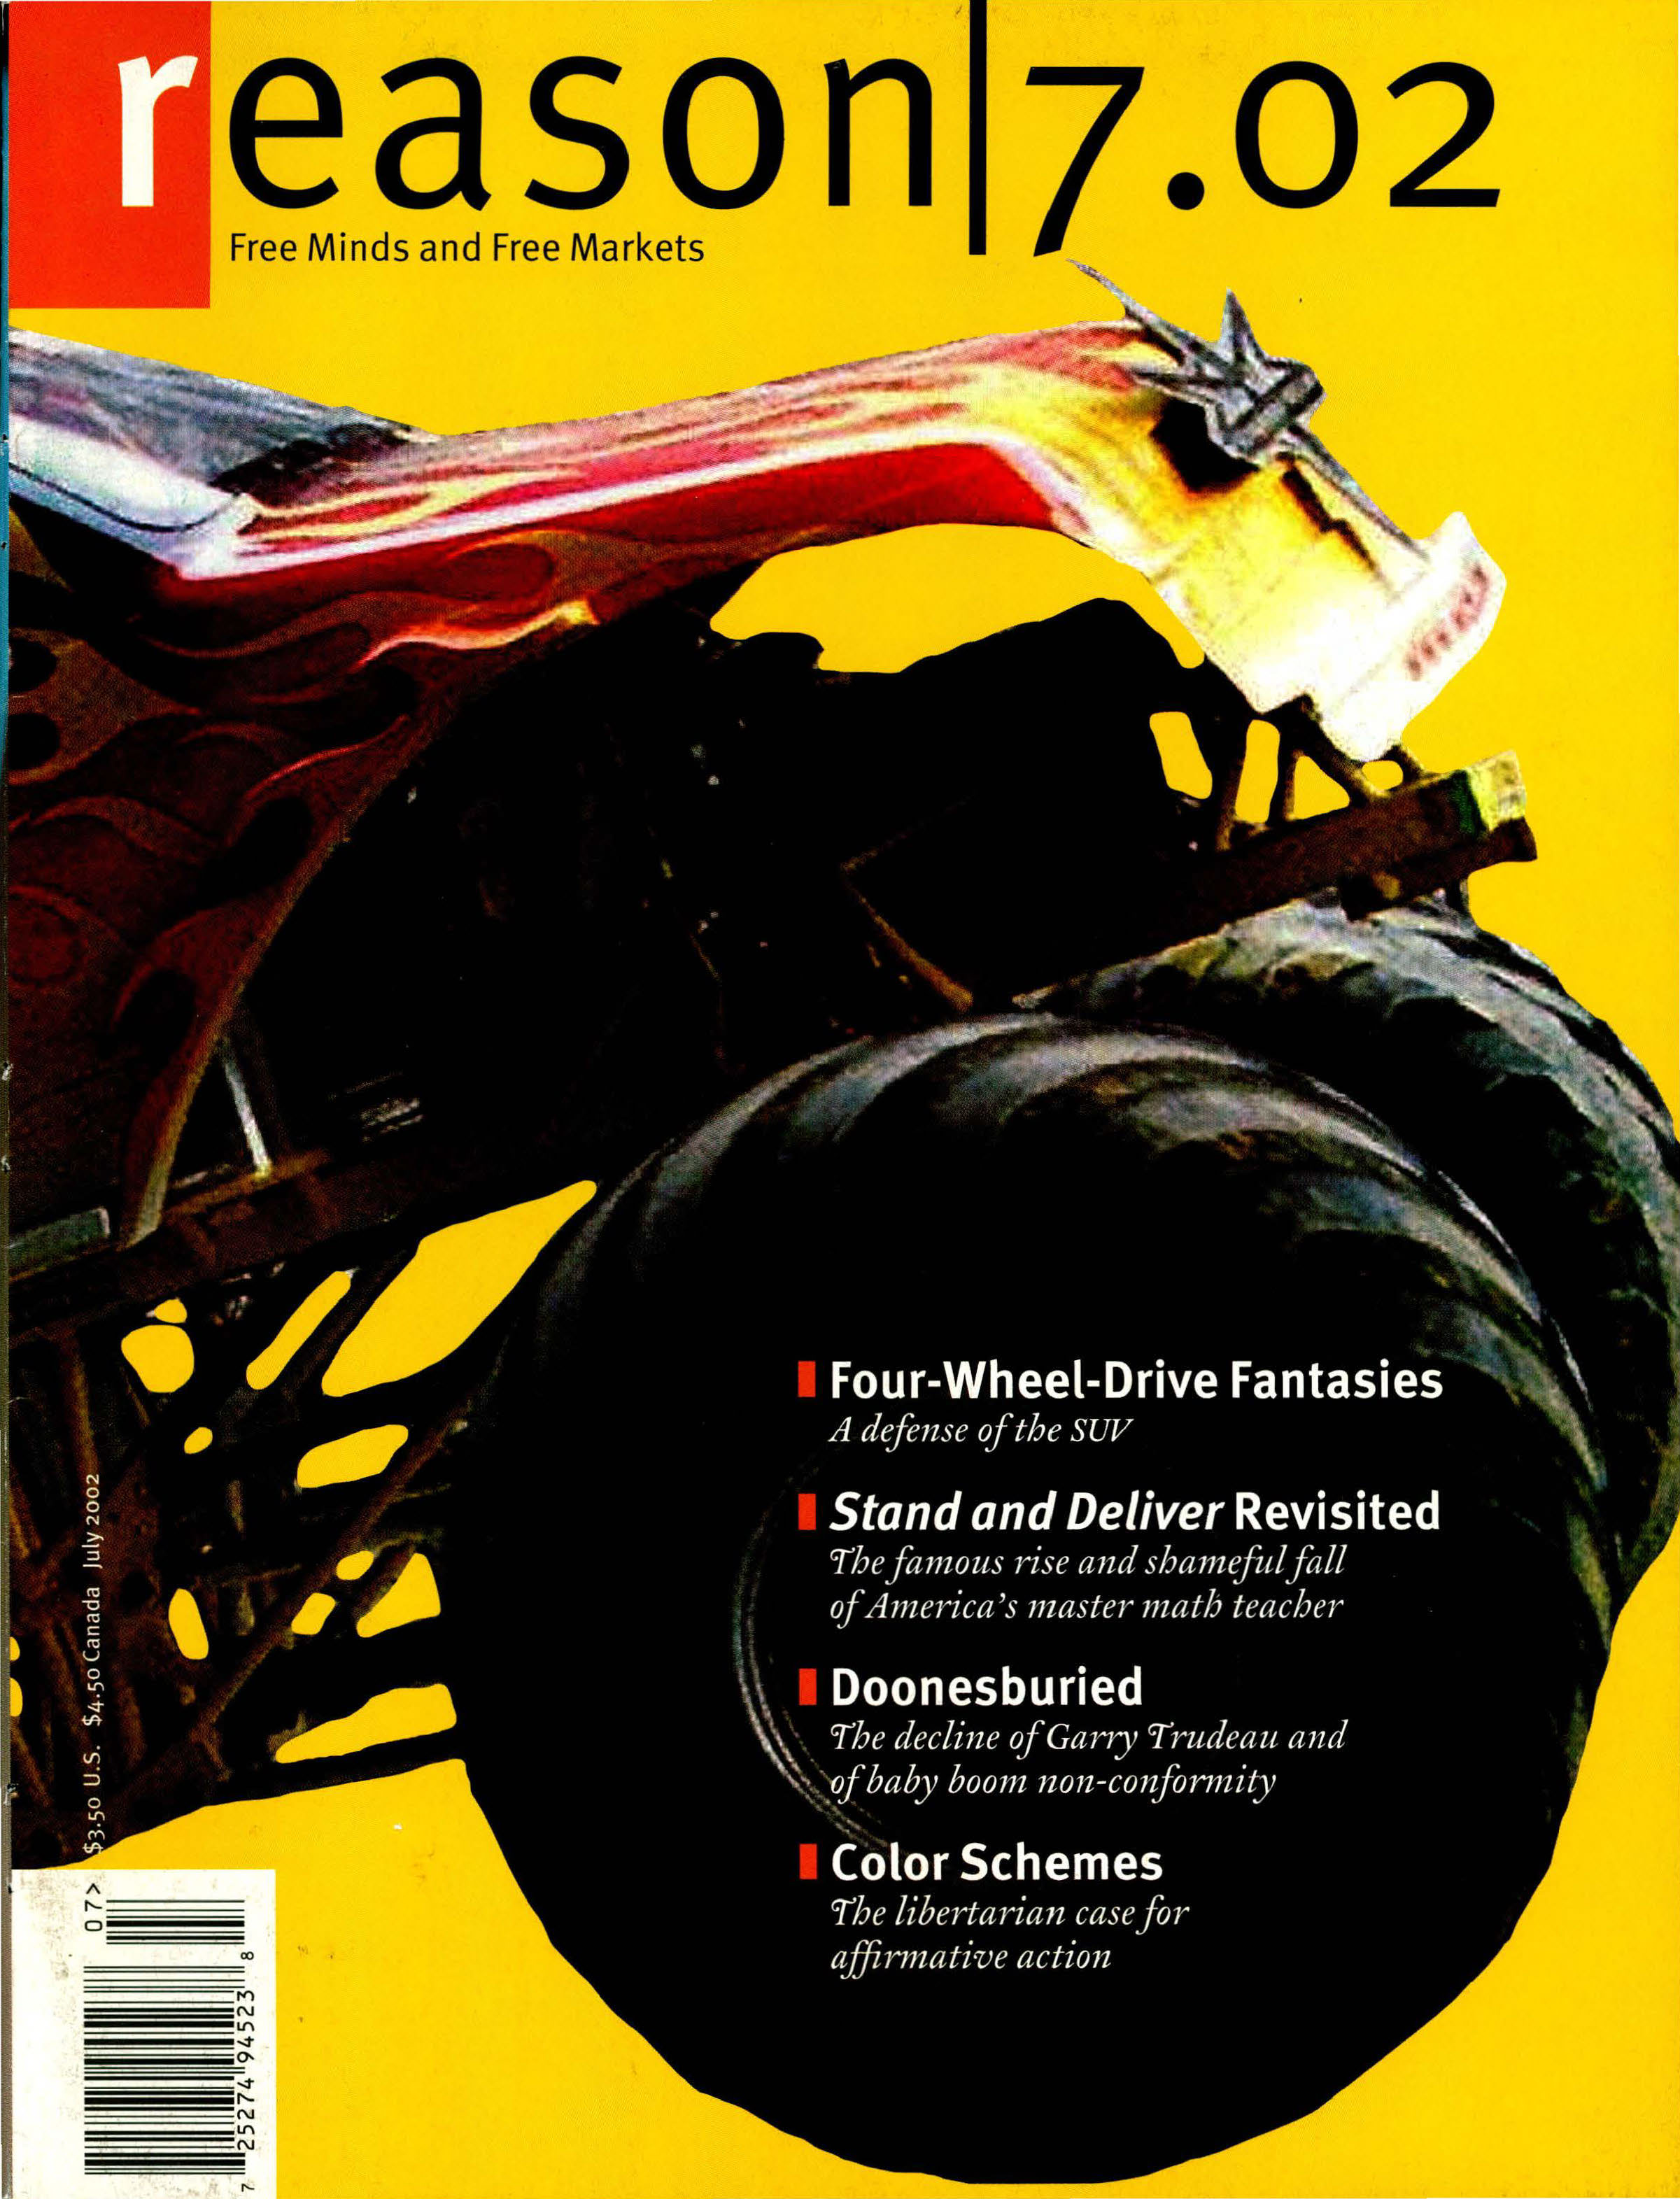 Reason Magazine, July 2002 cover image